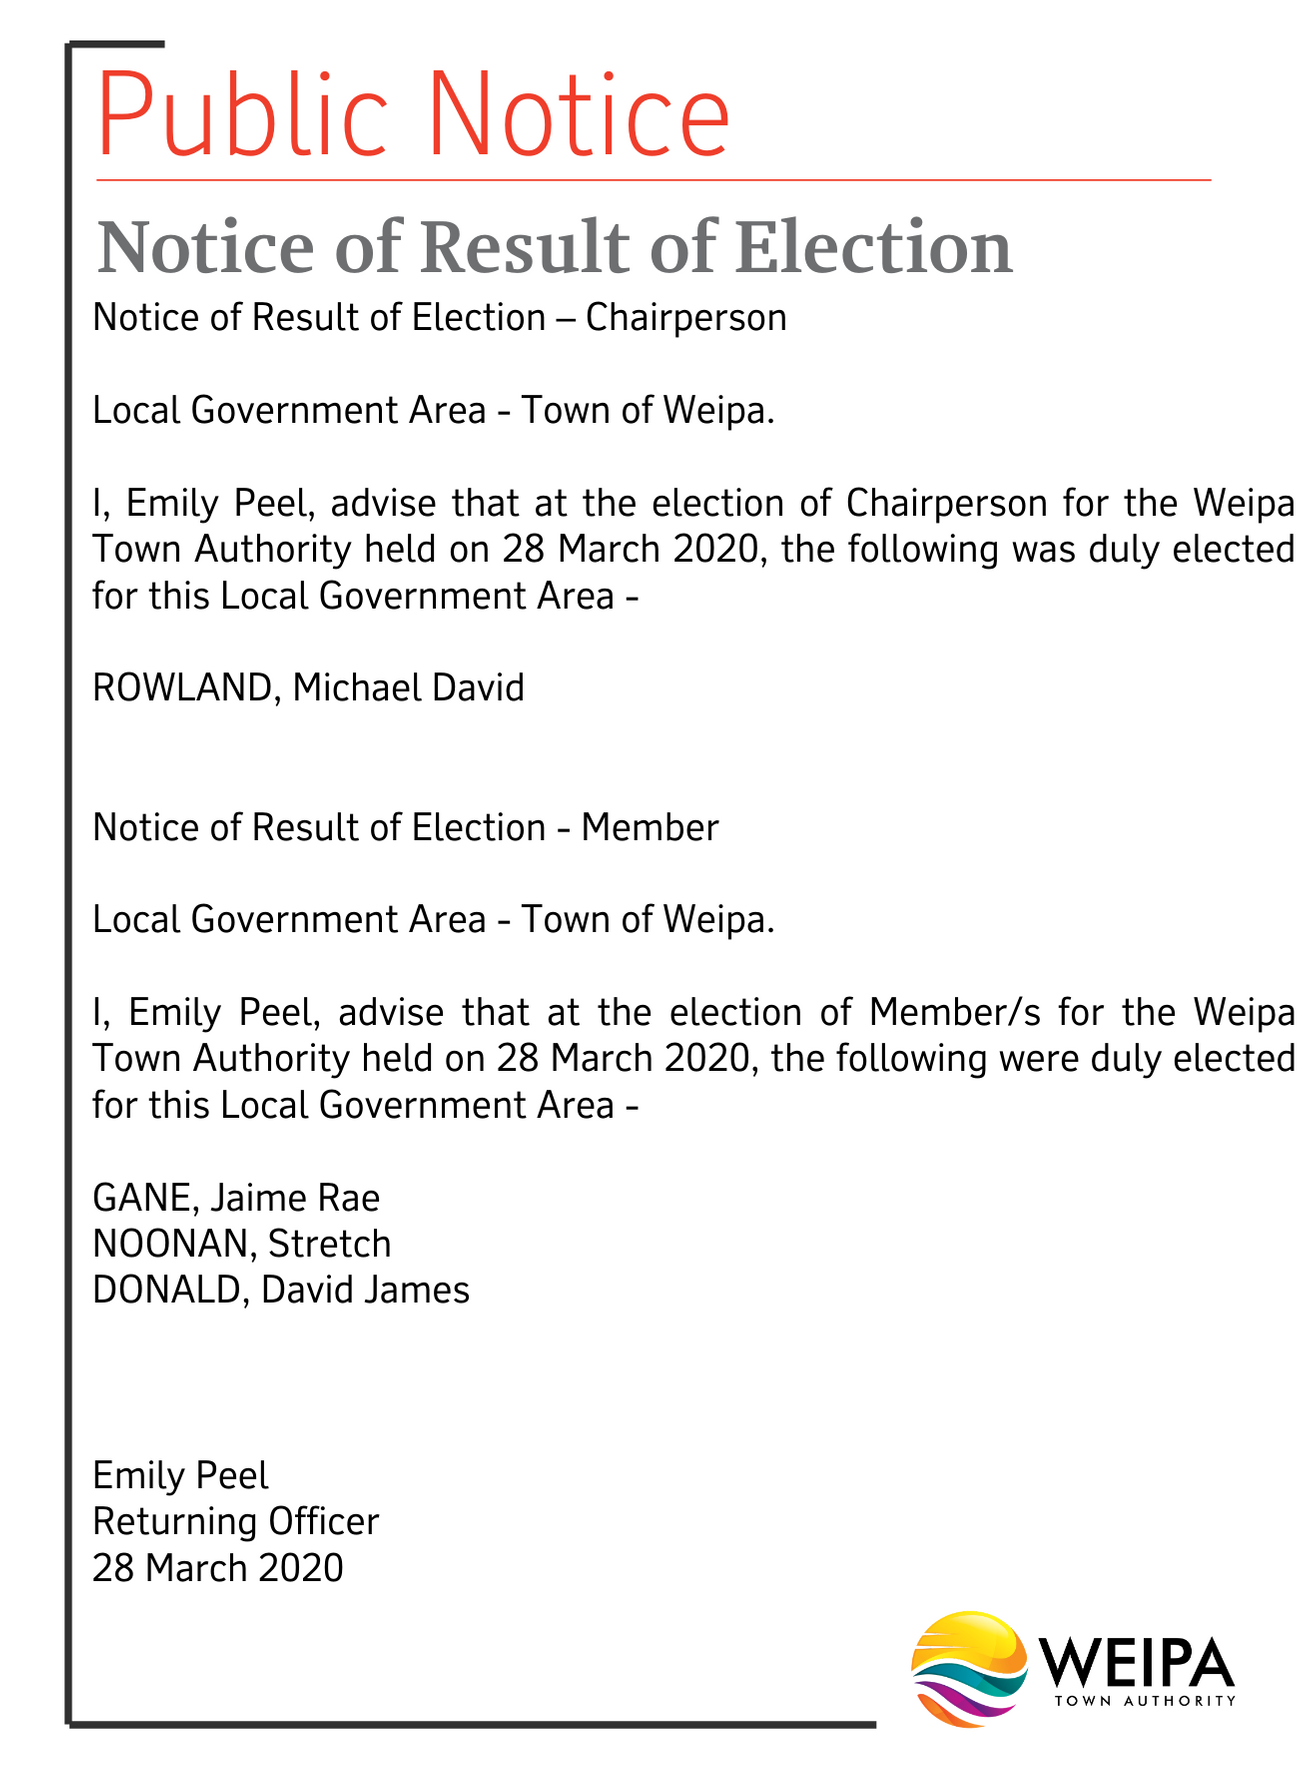 Notice of result of election